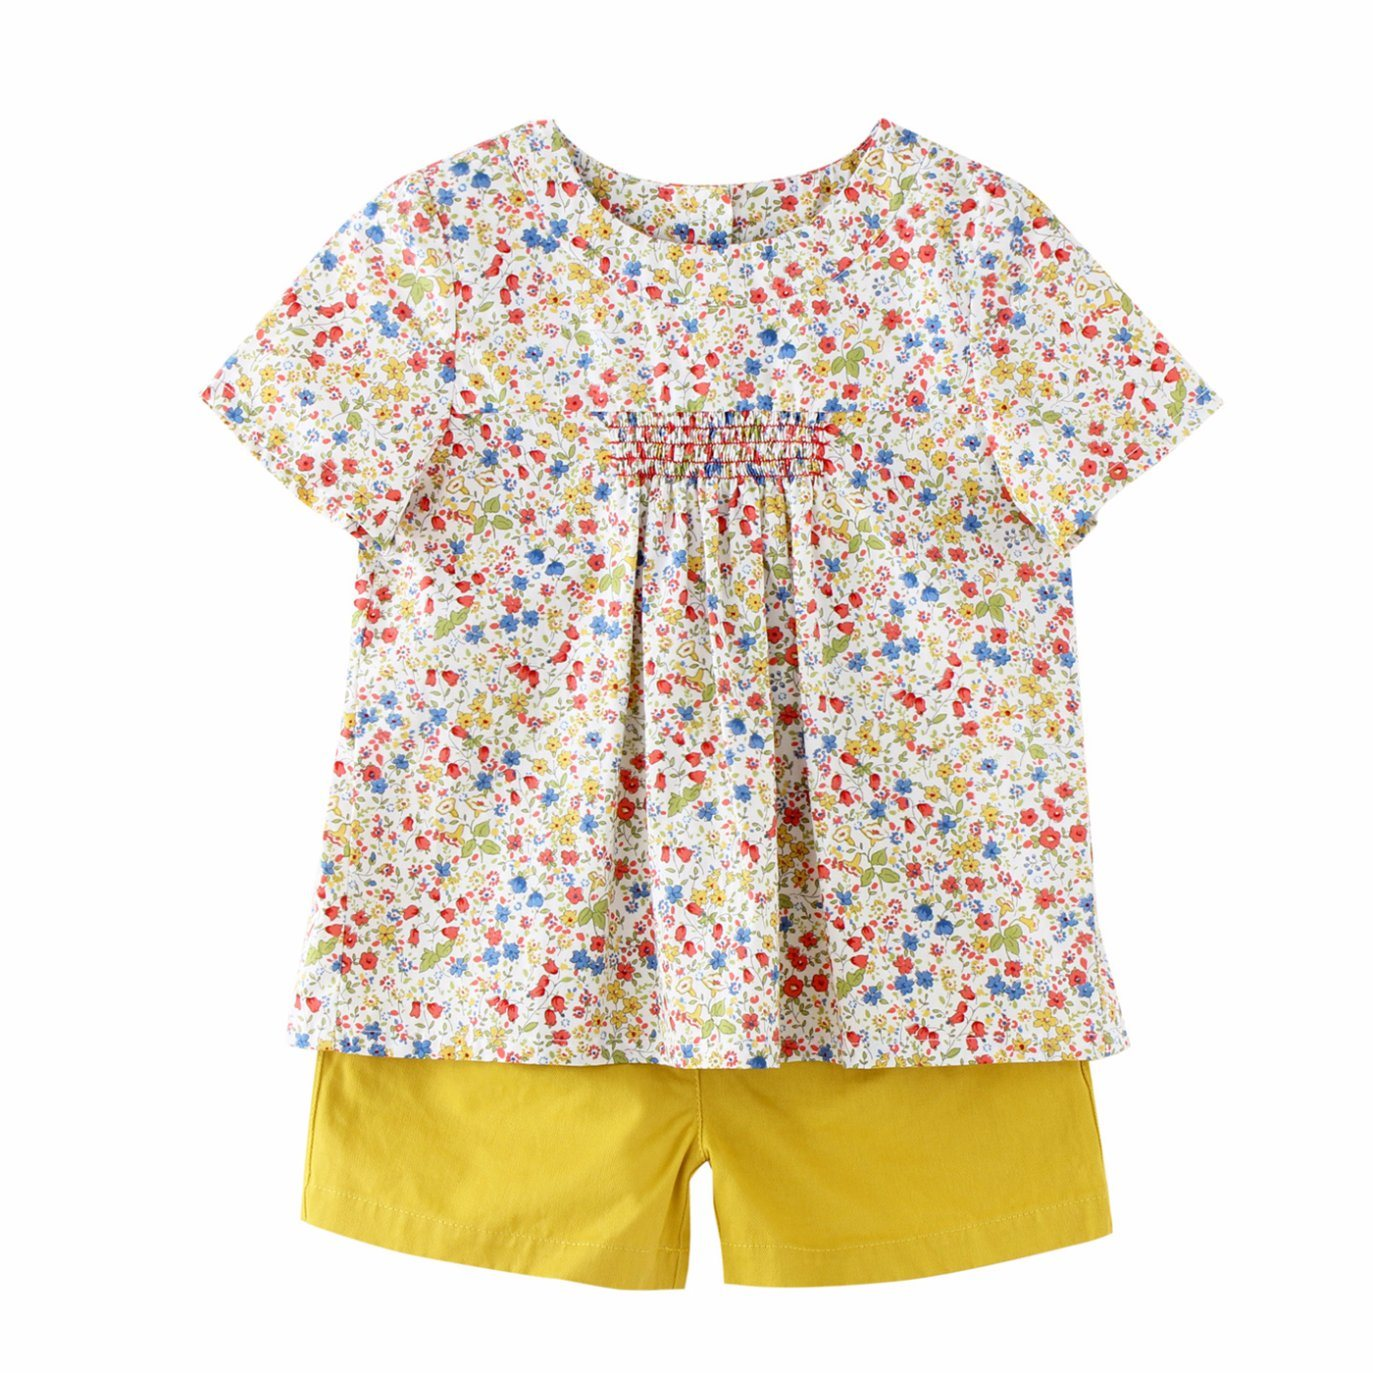 Baby Infant Kids Children′s Wear Clothes Clothing Shirts